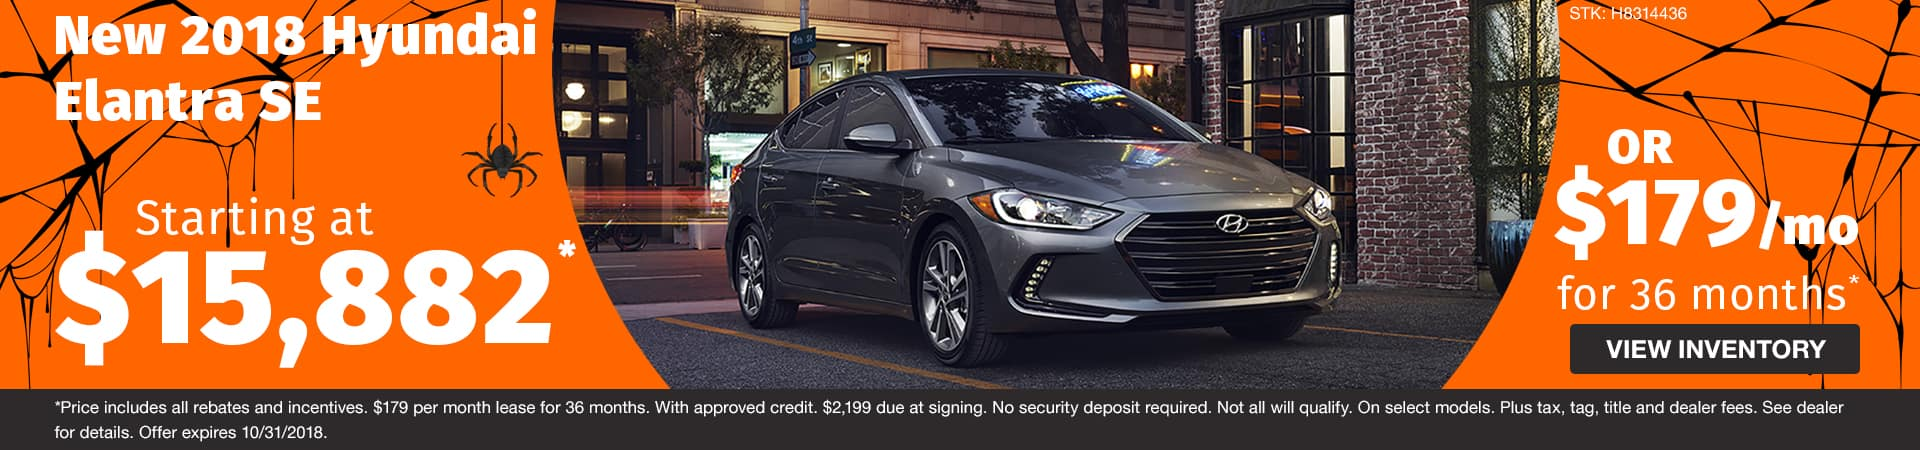 New 2018 Hyundai Elantra SE starting at $15,882 or drive for just $179 a month in Murfreesboro TN